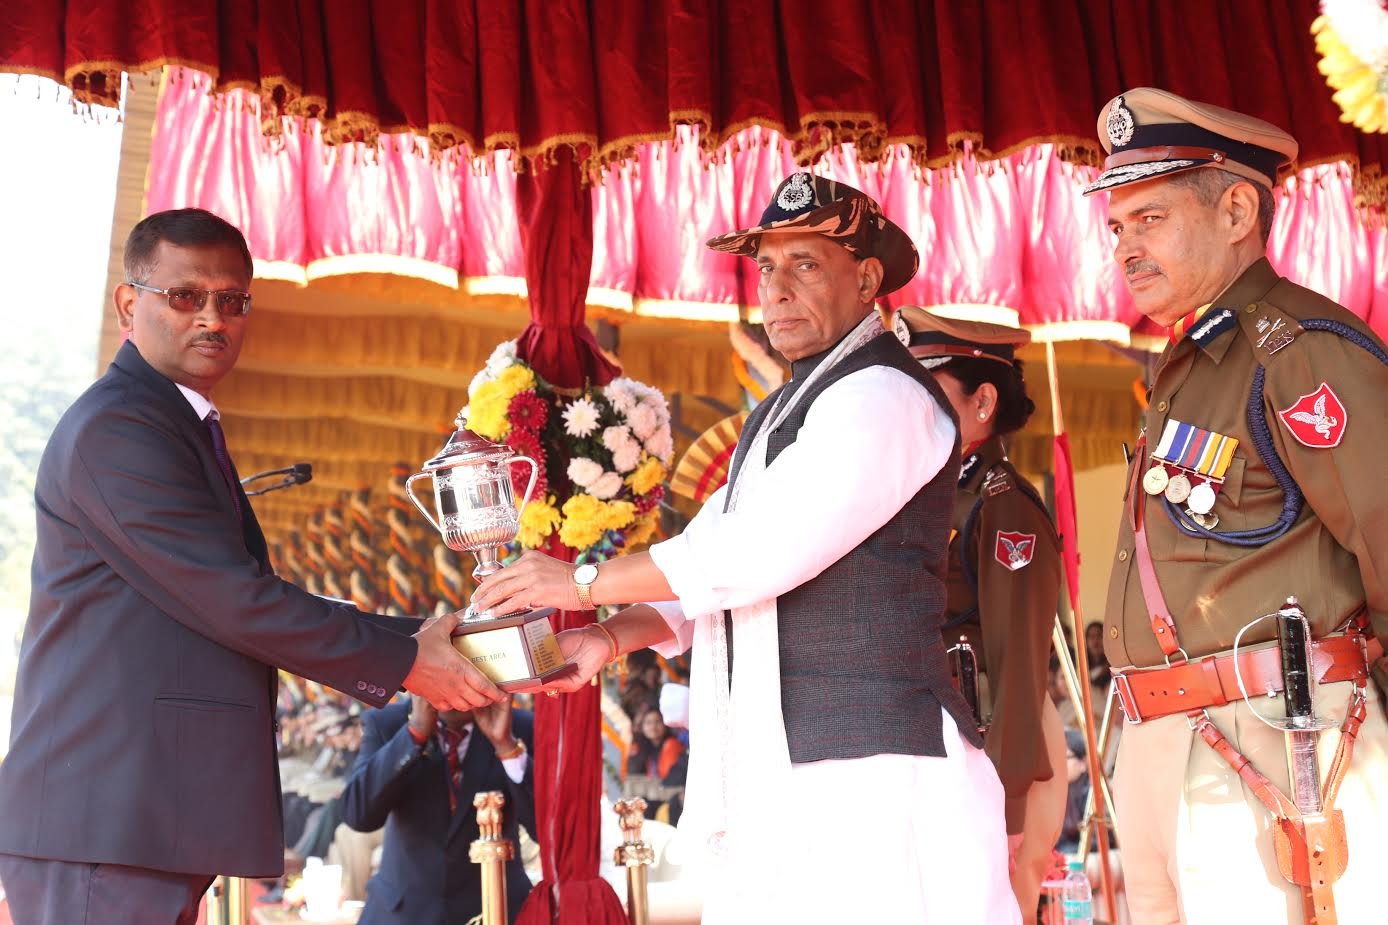 shri-rajnath-singh-giving-medals-to-ssb-jawans-4